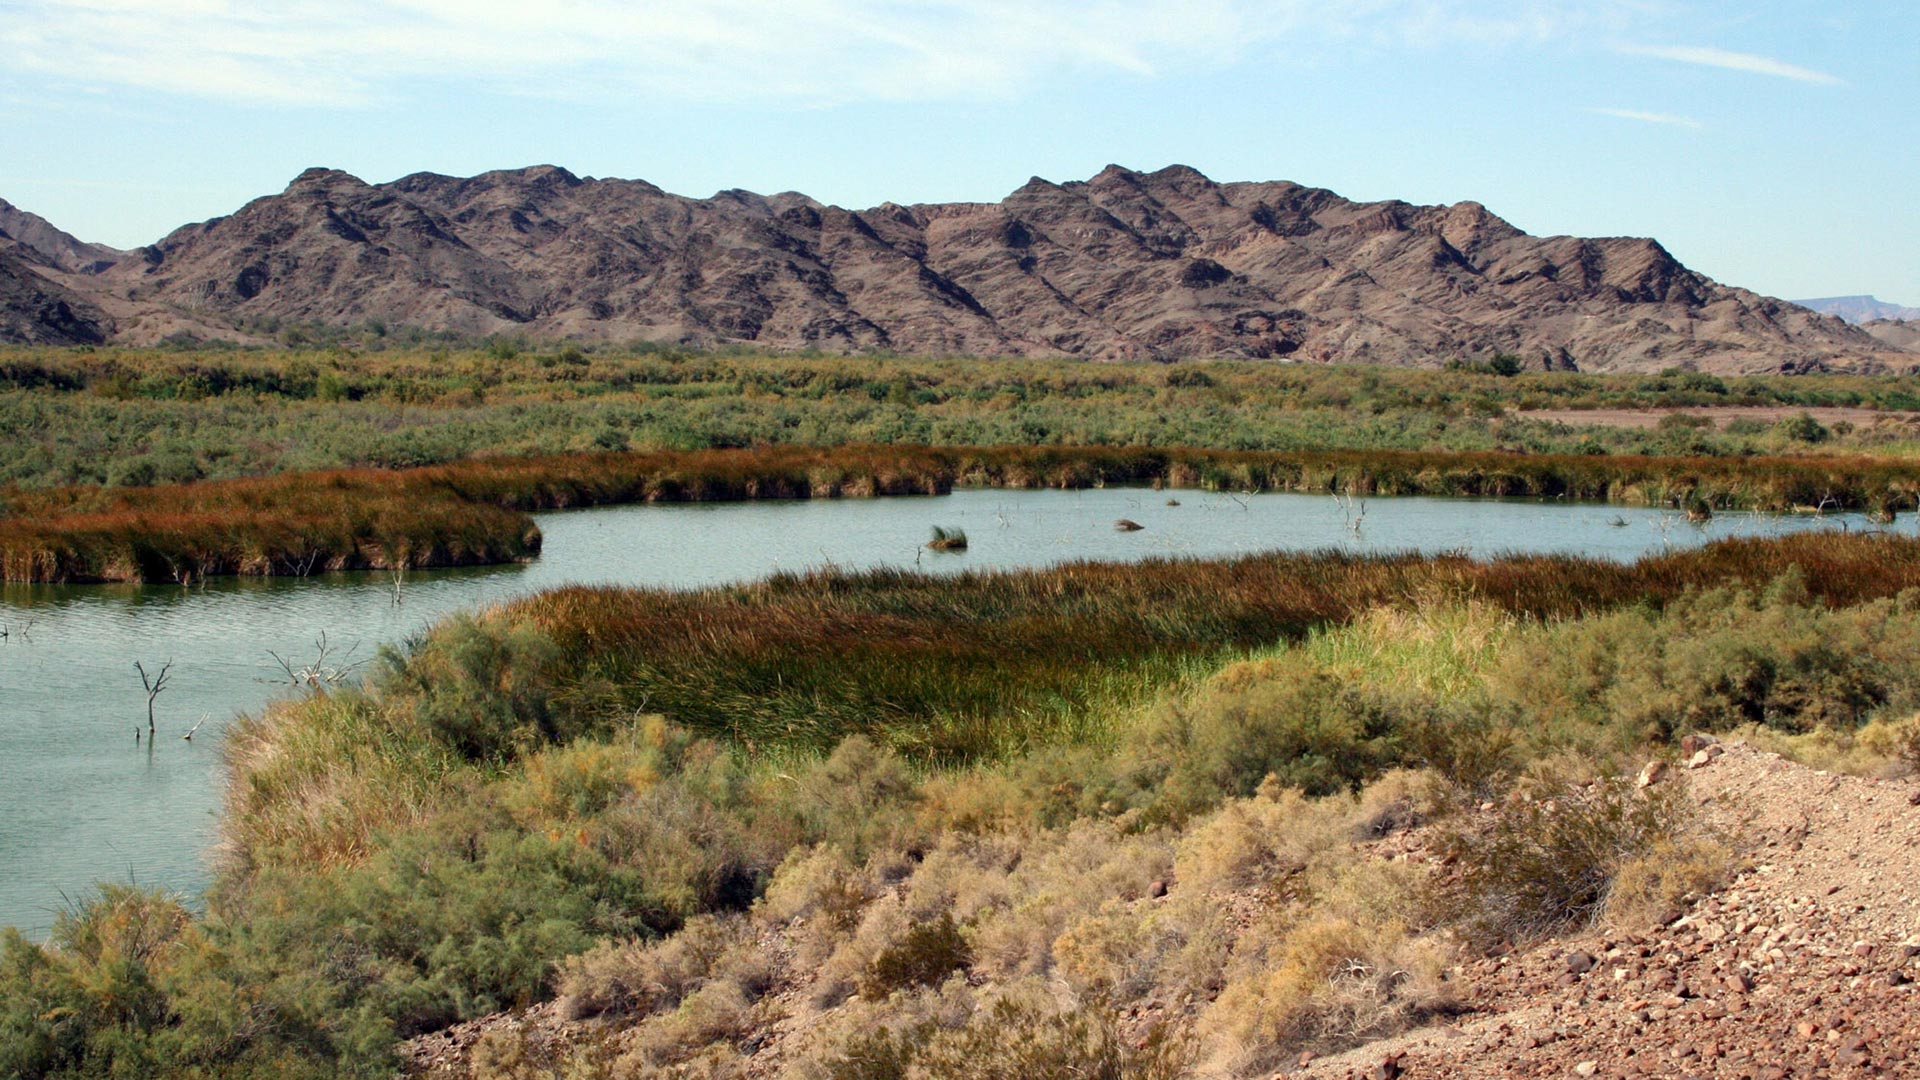 Image from a section of the Lower Colorado River Planning Area.